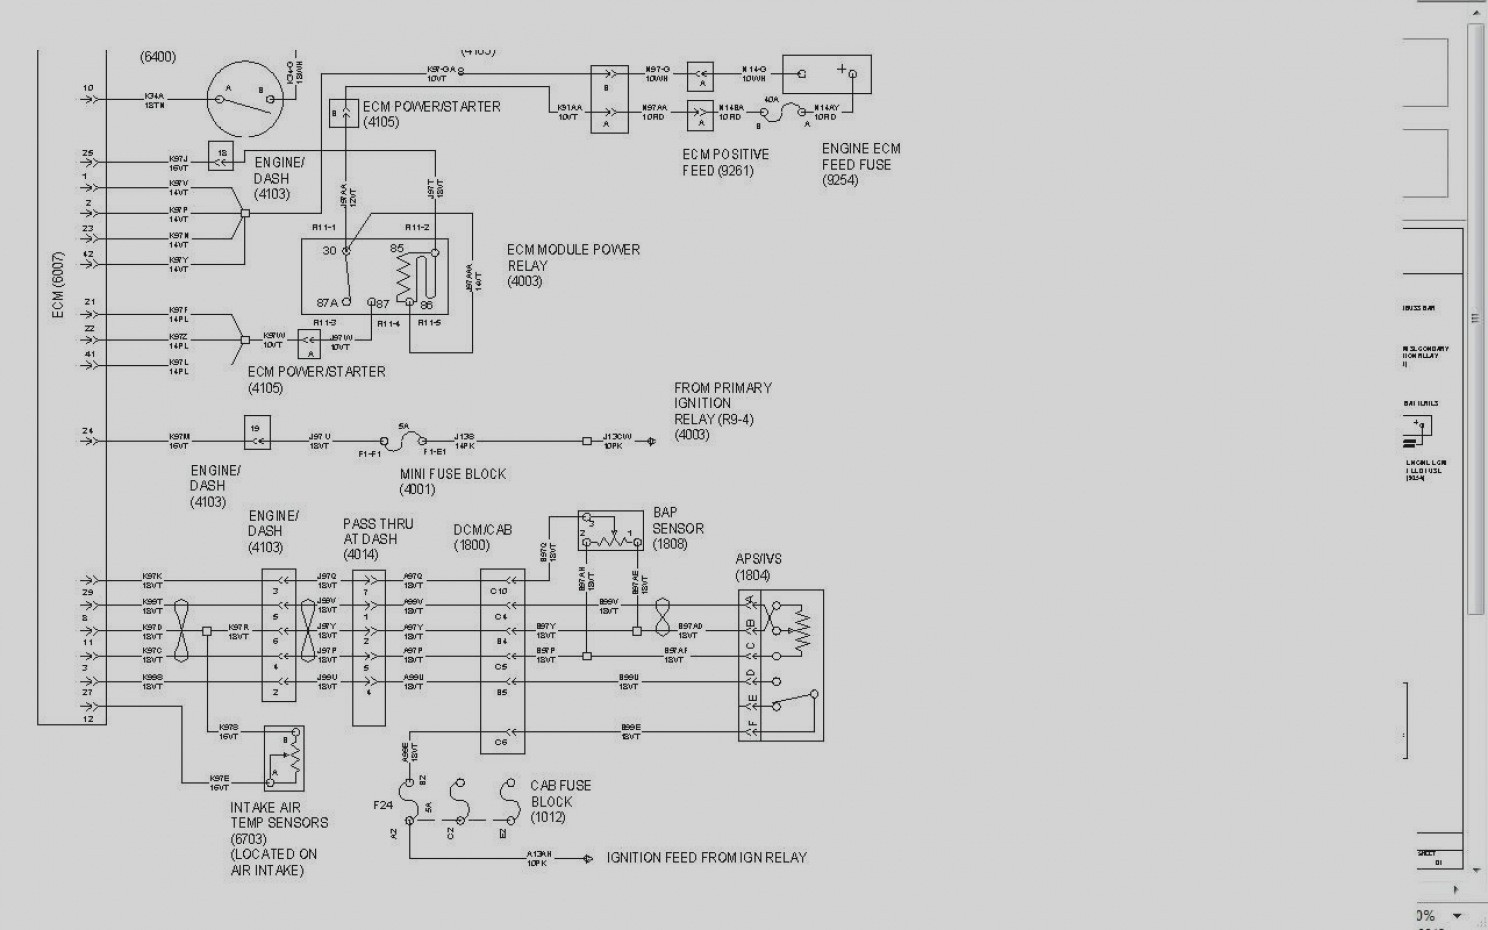 hight resolution of international 450 wiring diagram wiring diagram2003 international 4300 starter wiring diagram wiring diagrams system mix international